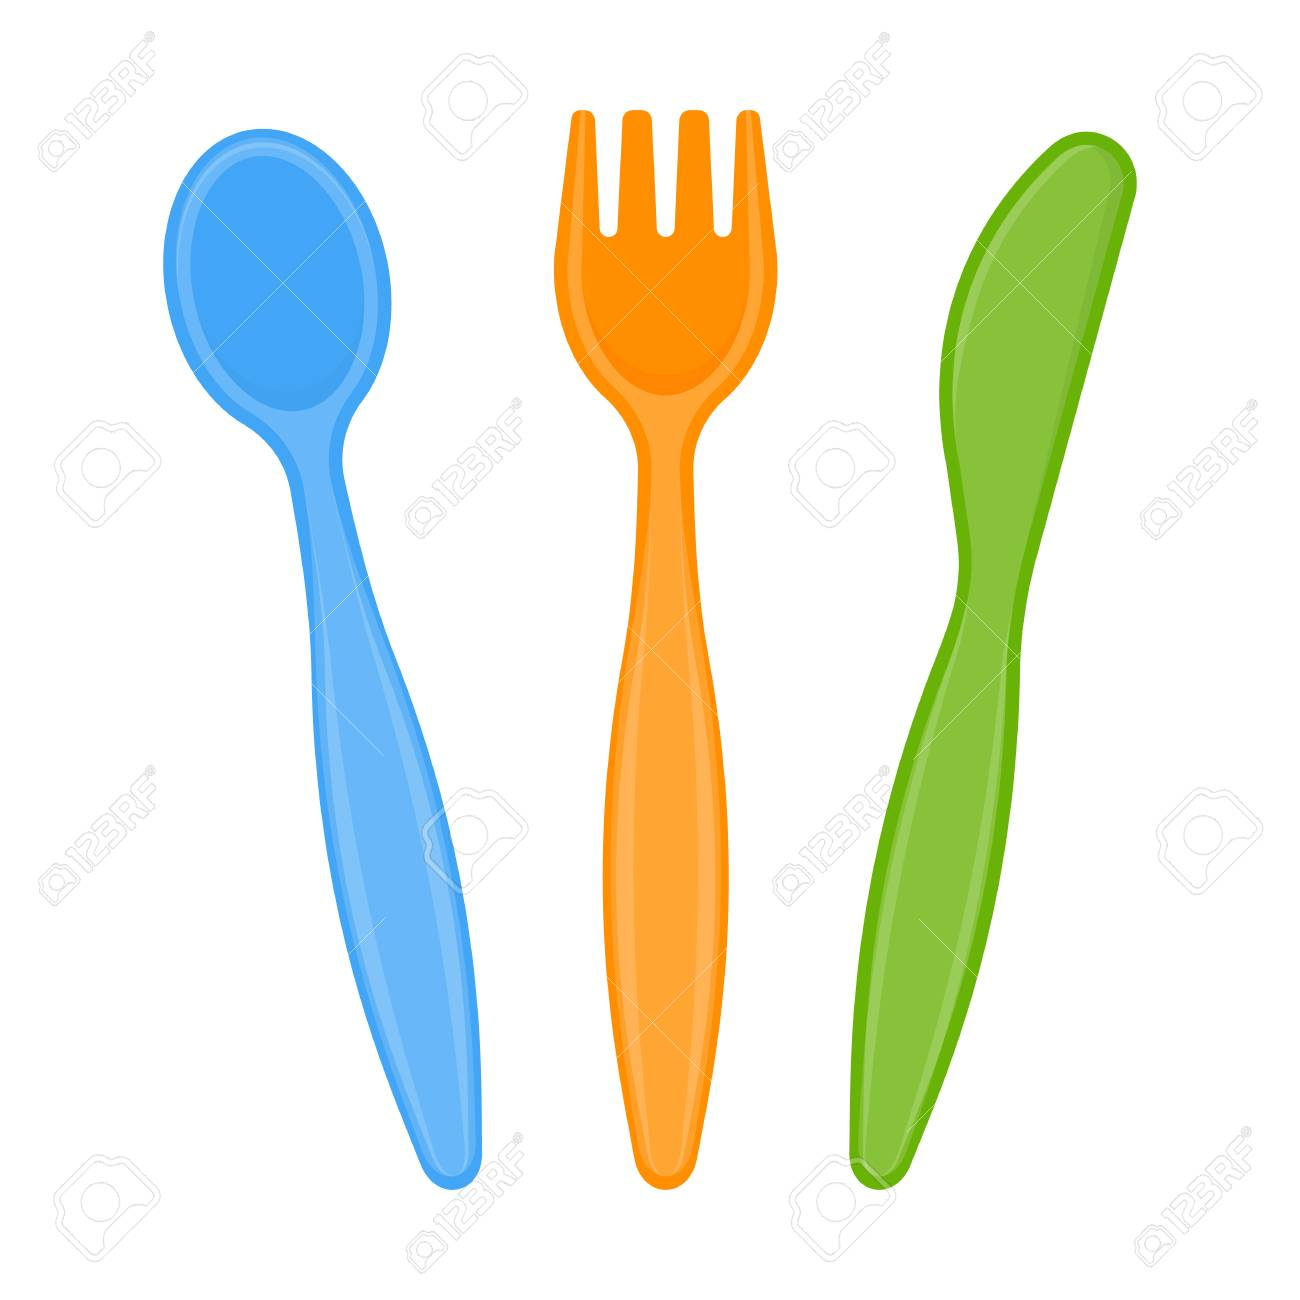 Vector Illustration Of Plastic Spoon Fork And Knife Isolated